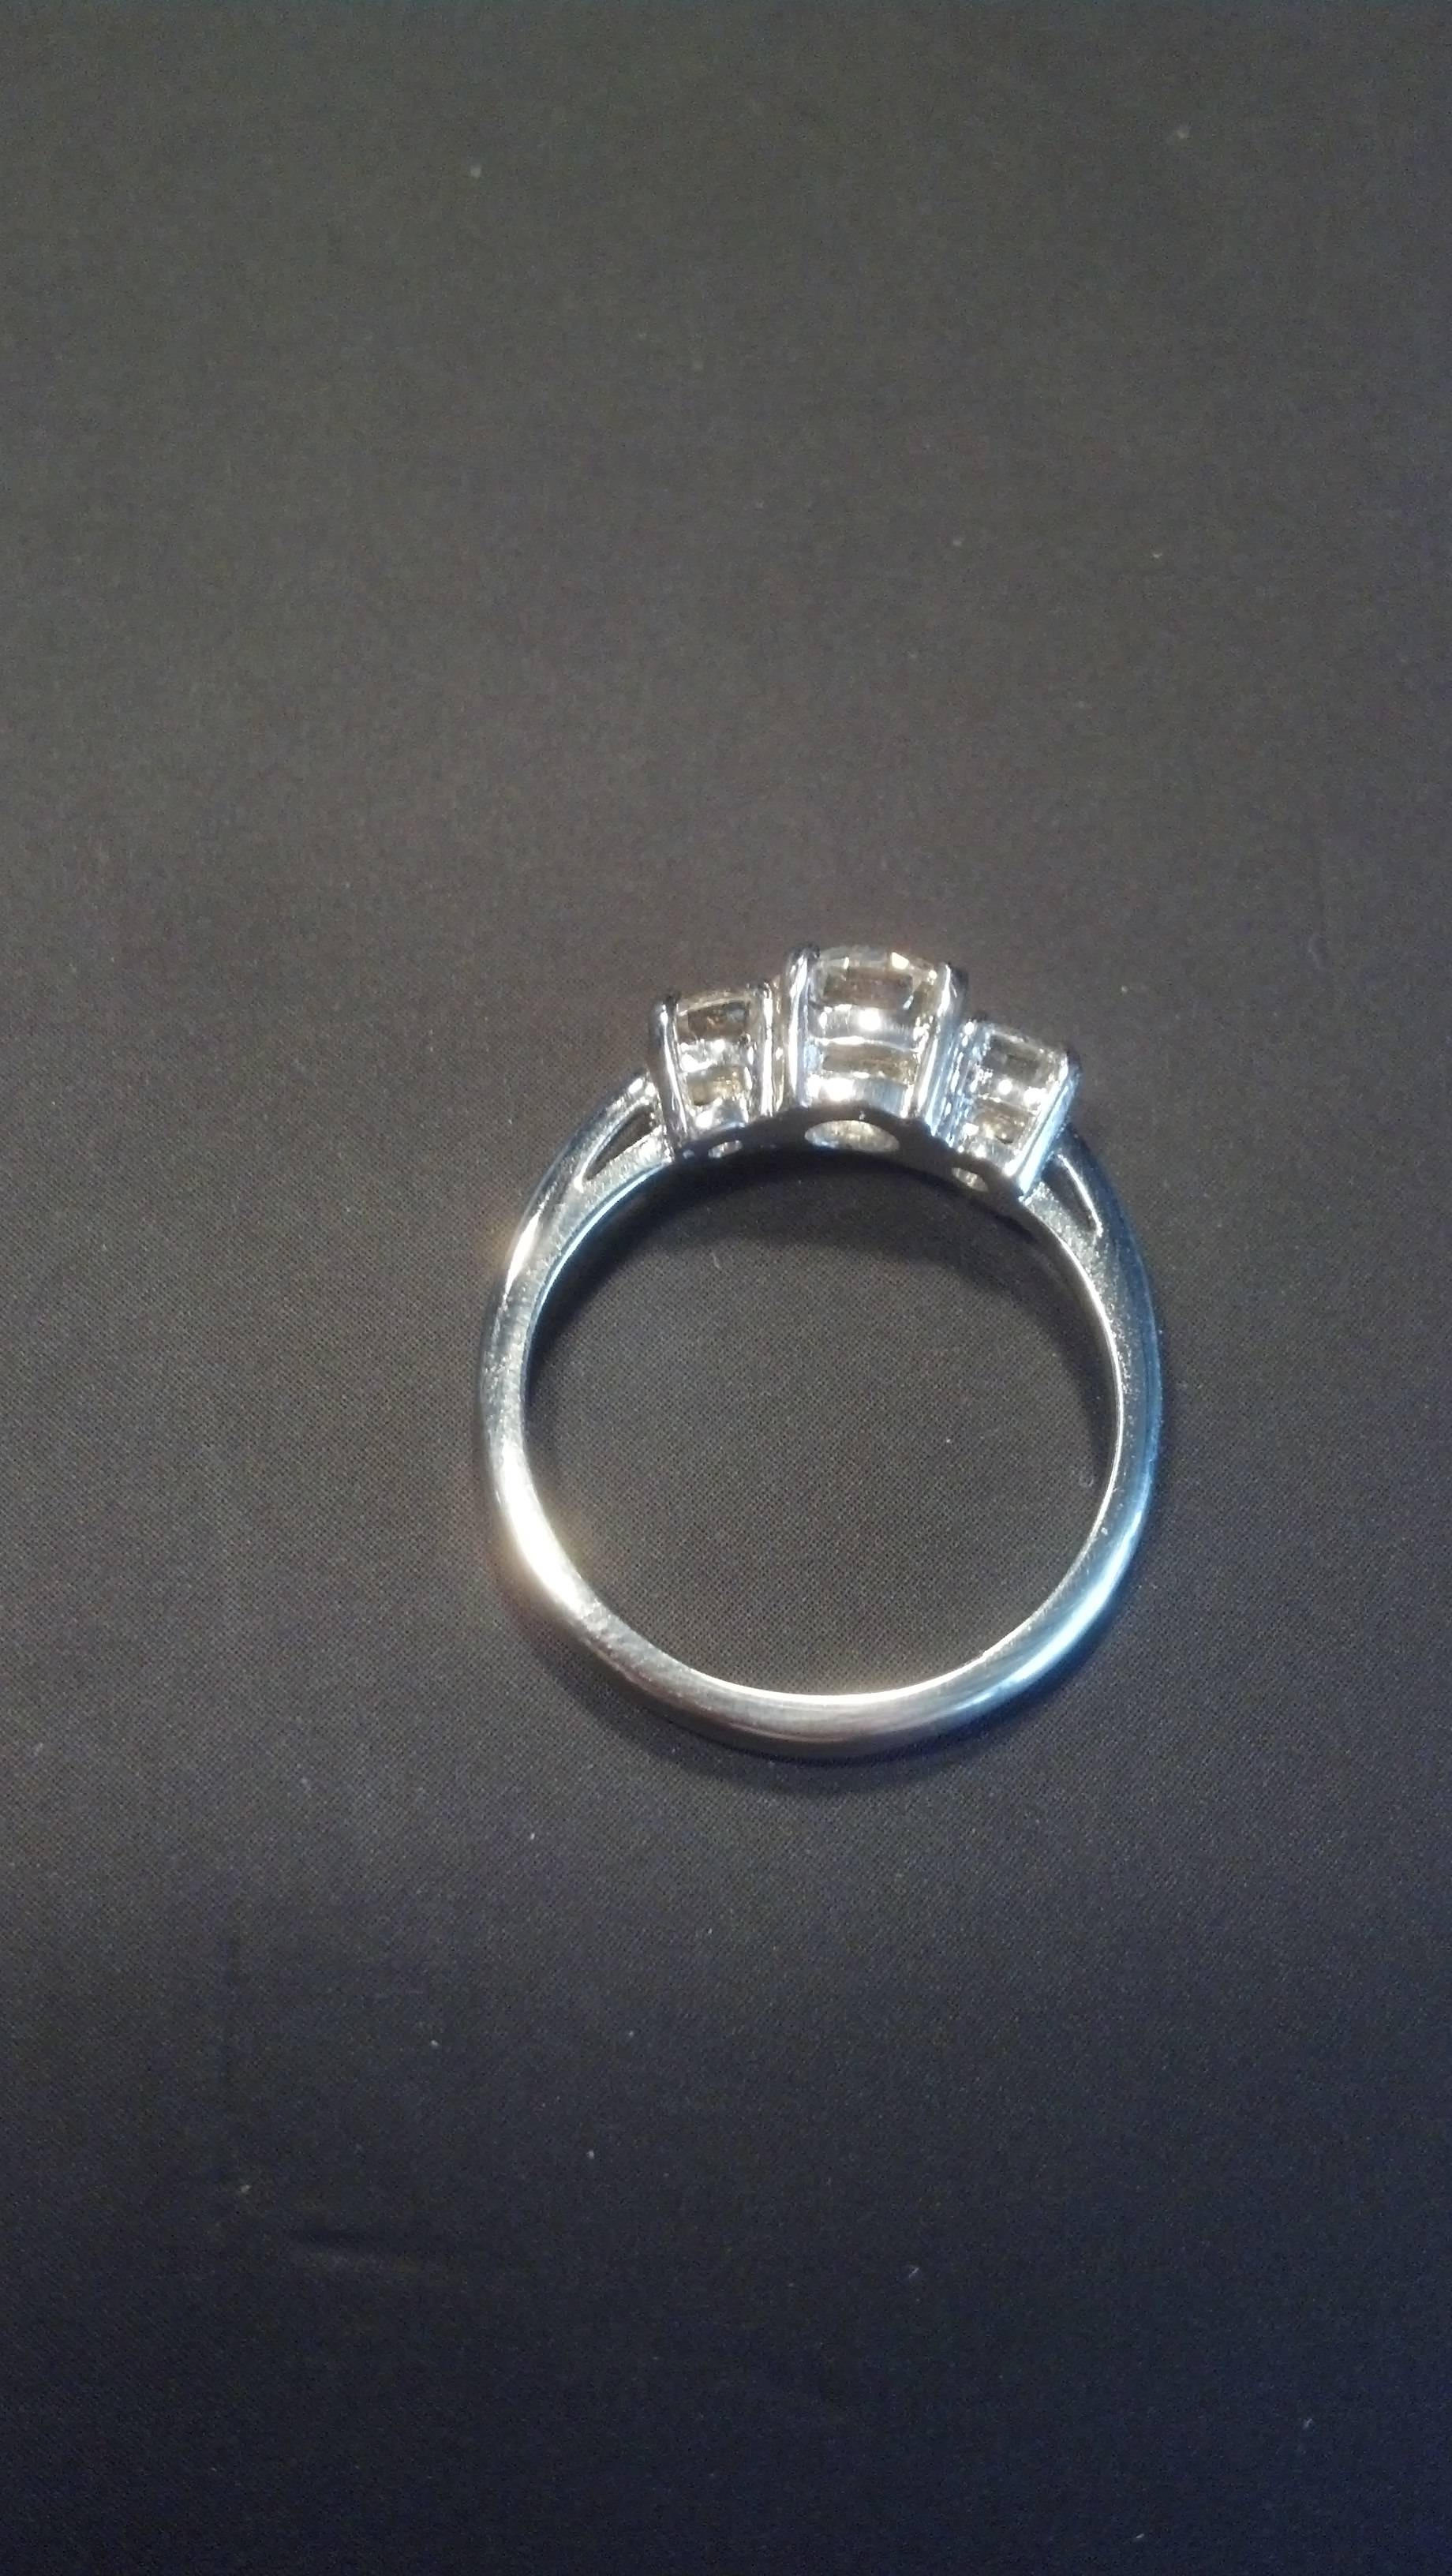 Free Diamond Rings. Costco Jewelry Diamond Rings: Costco Jewelry Intended For Costco Canada Engagement Rings (Gallery 8 of 15)